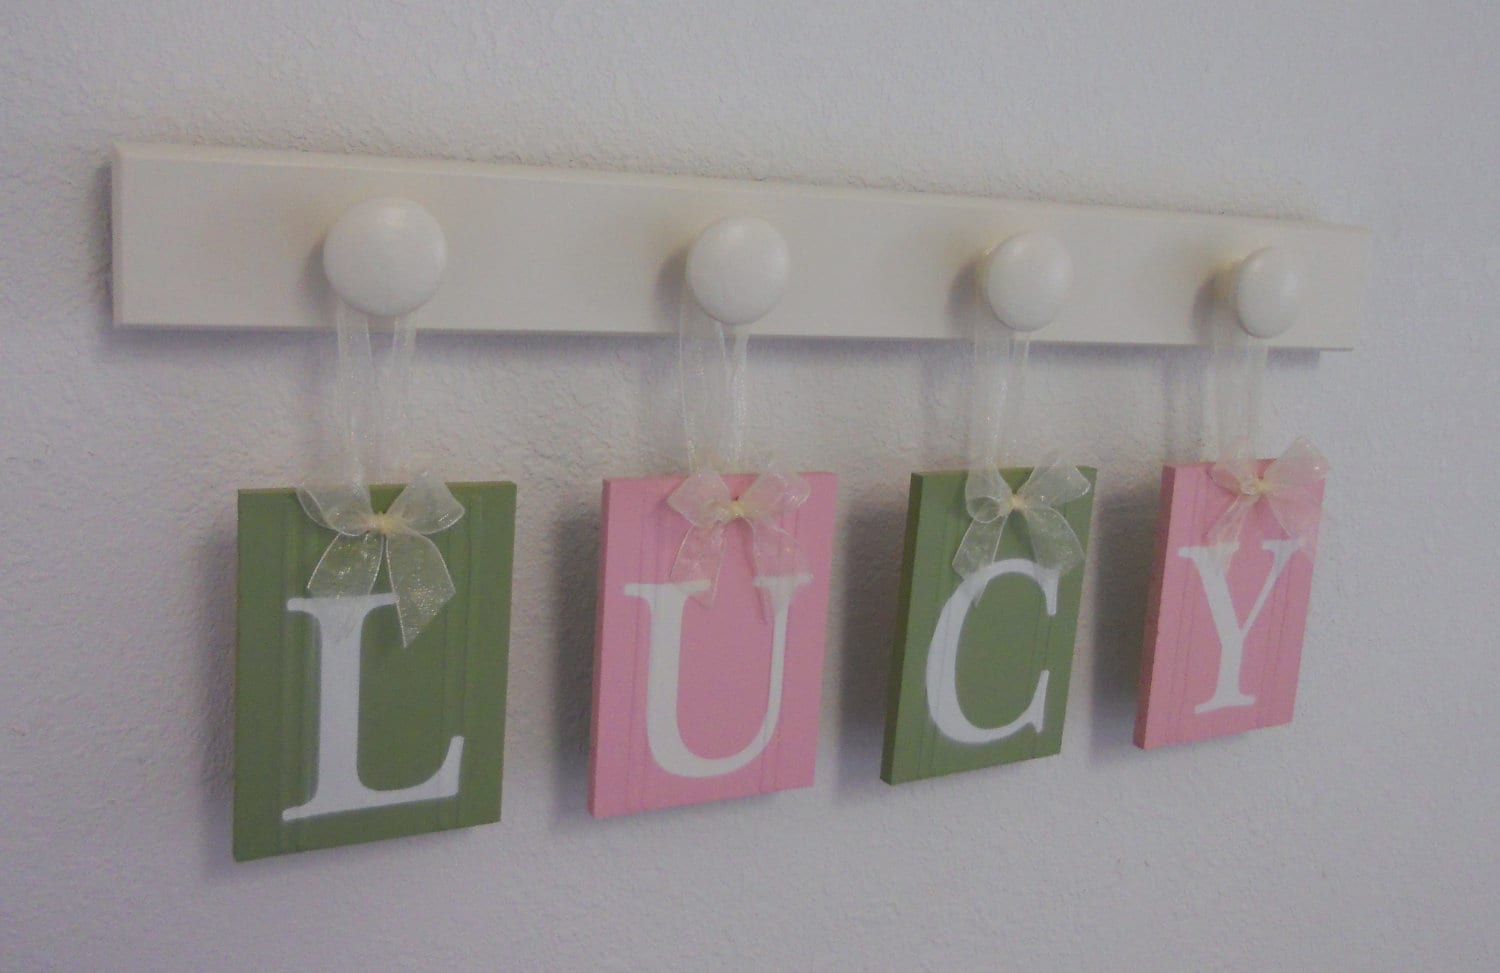 Nursery Wall Hanging Baby Letters On Wall For LUCY In Pink And